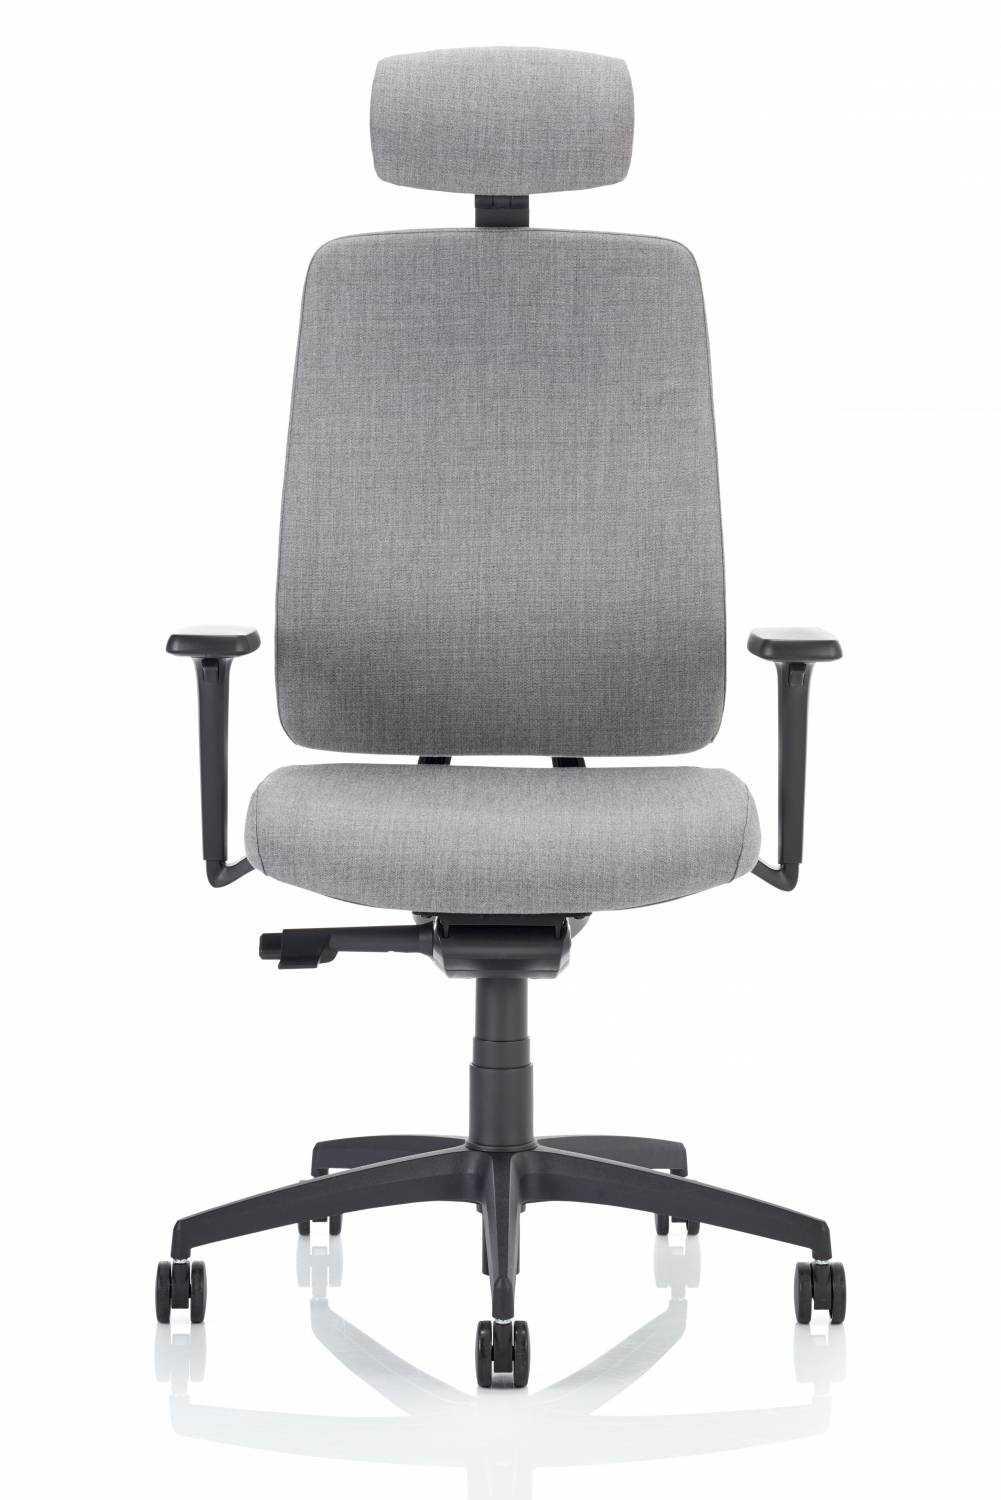 Fully Upholstered Task Chair with Headrest Grey